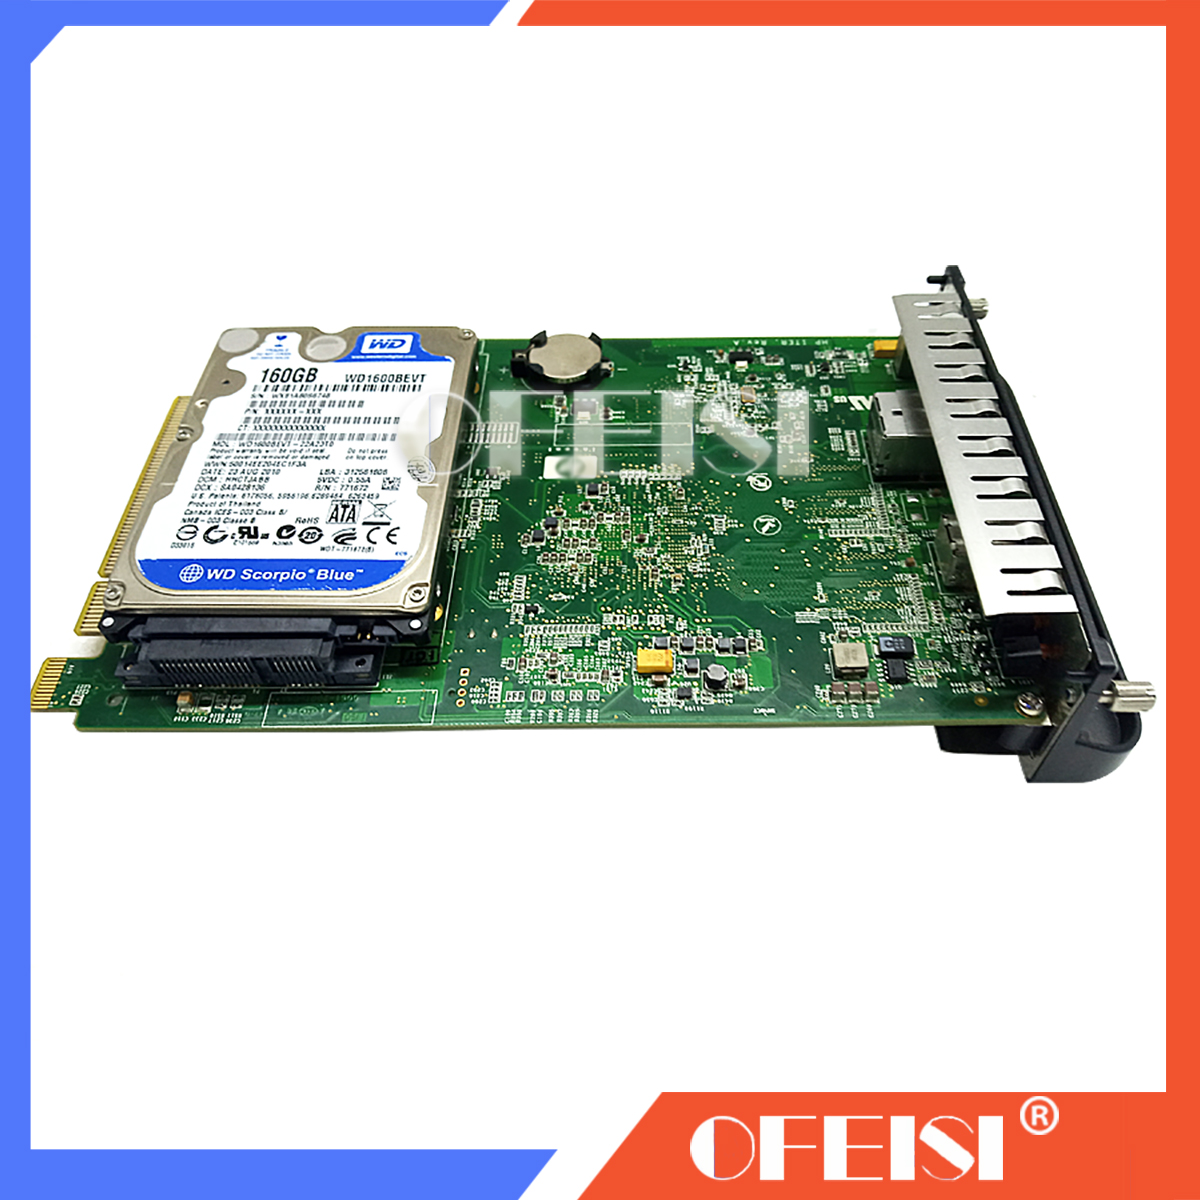 Formatter Board card for HP T790 T1300 T2300 CN727-67035 CN727-67042 CN727-60115 Formatter PCB card in plotter partsFormatter Board card for HP T790 T1300 T2300 CN727-67035 CN727-67042 CN727-60115 Formatter PCB card in plotter parts